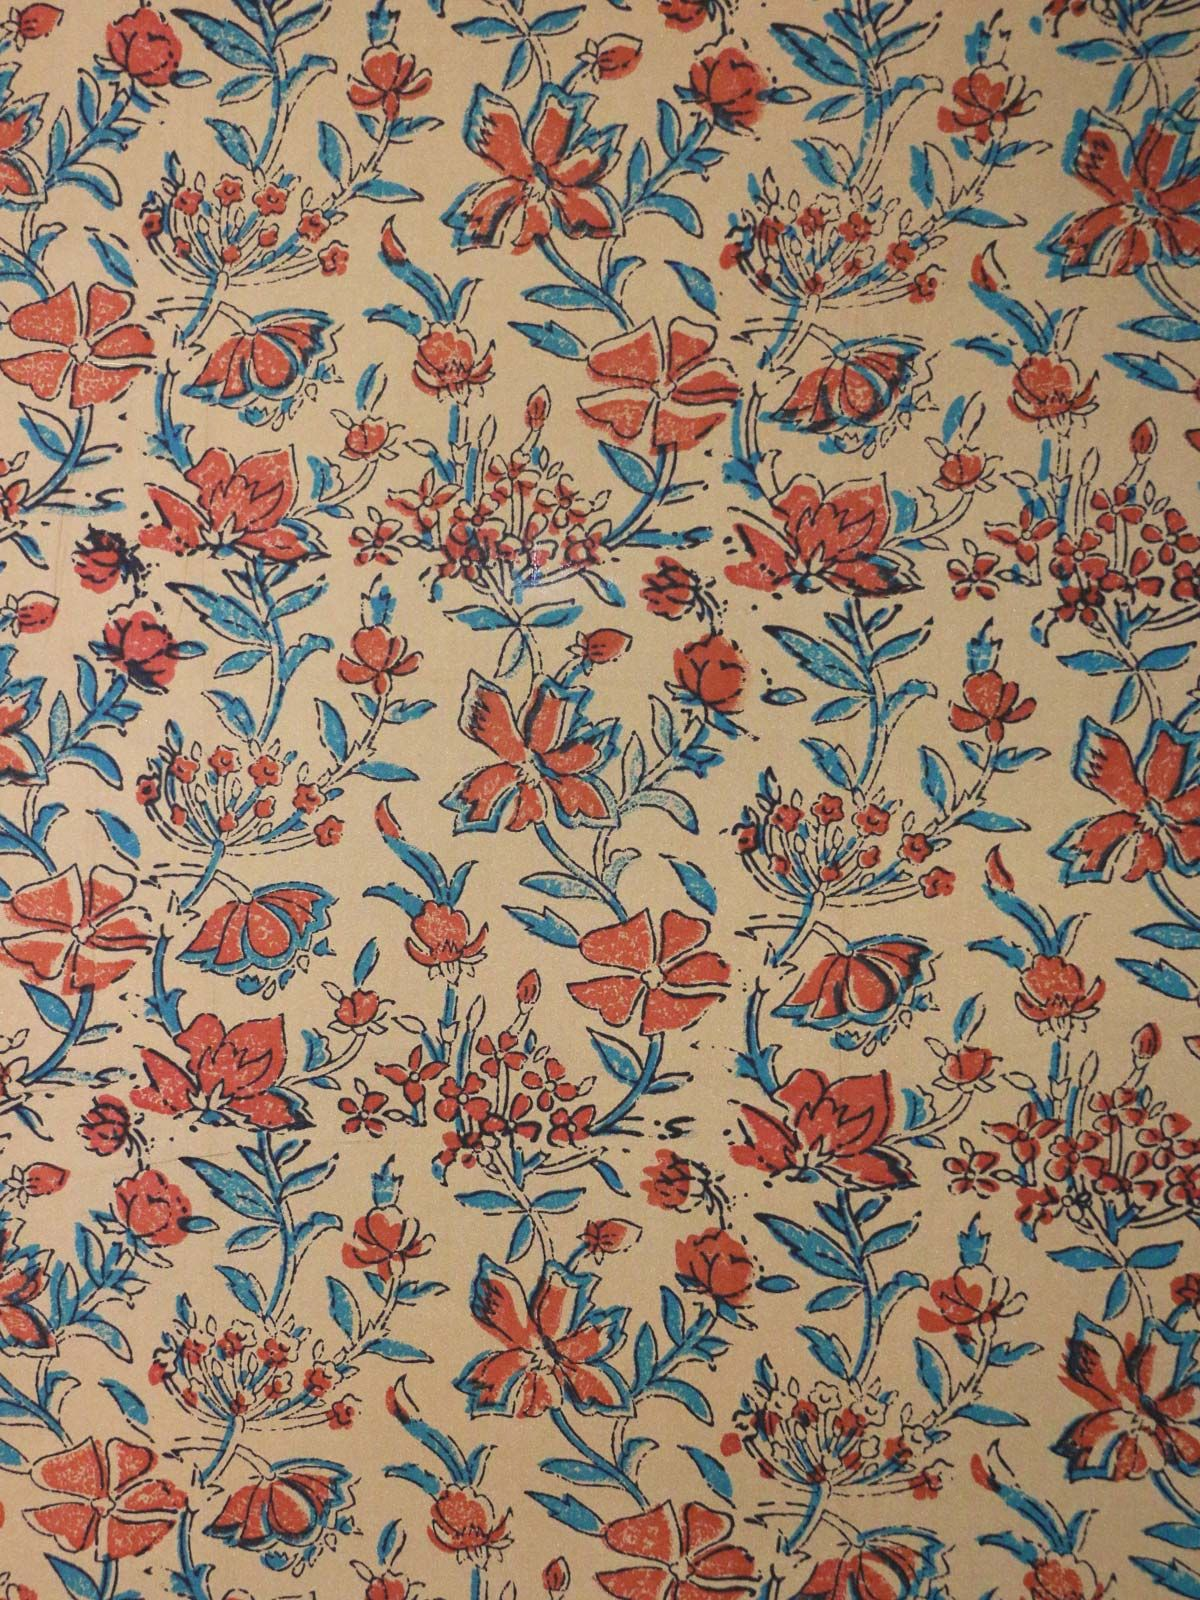 Floral printed mulberrry silk fabric